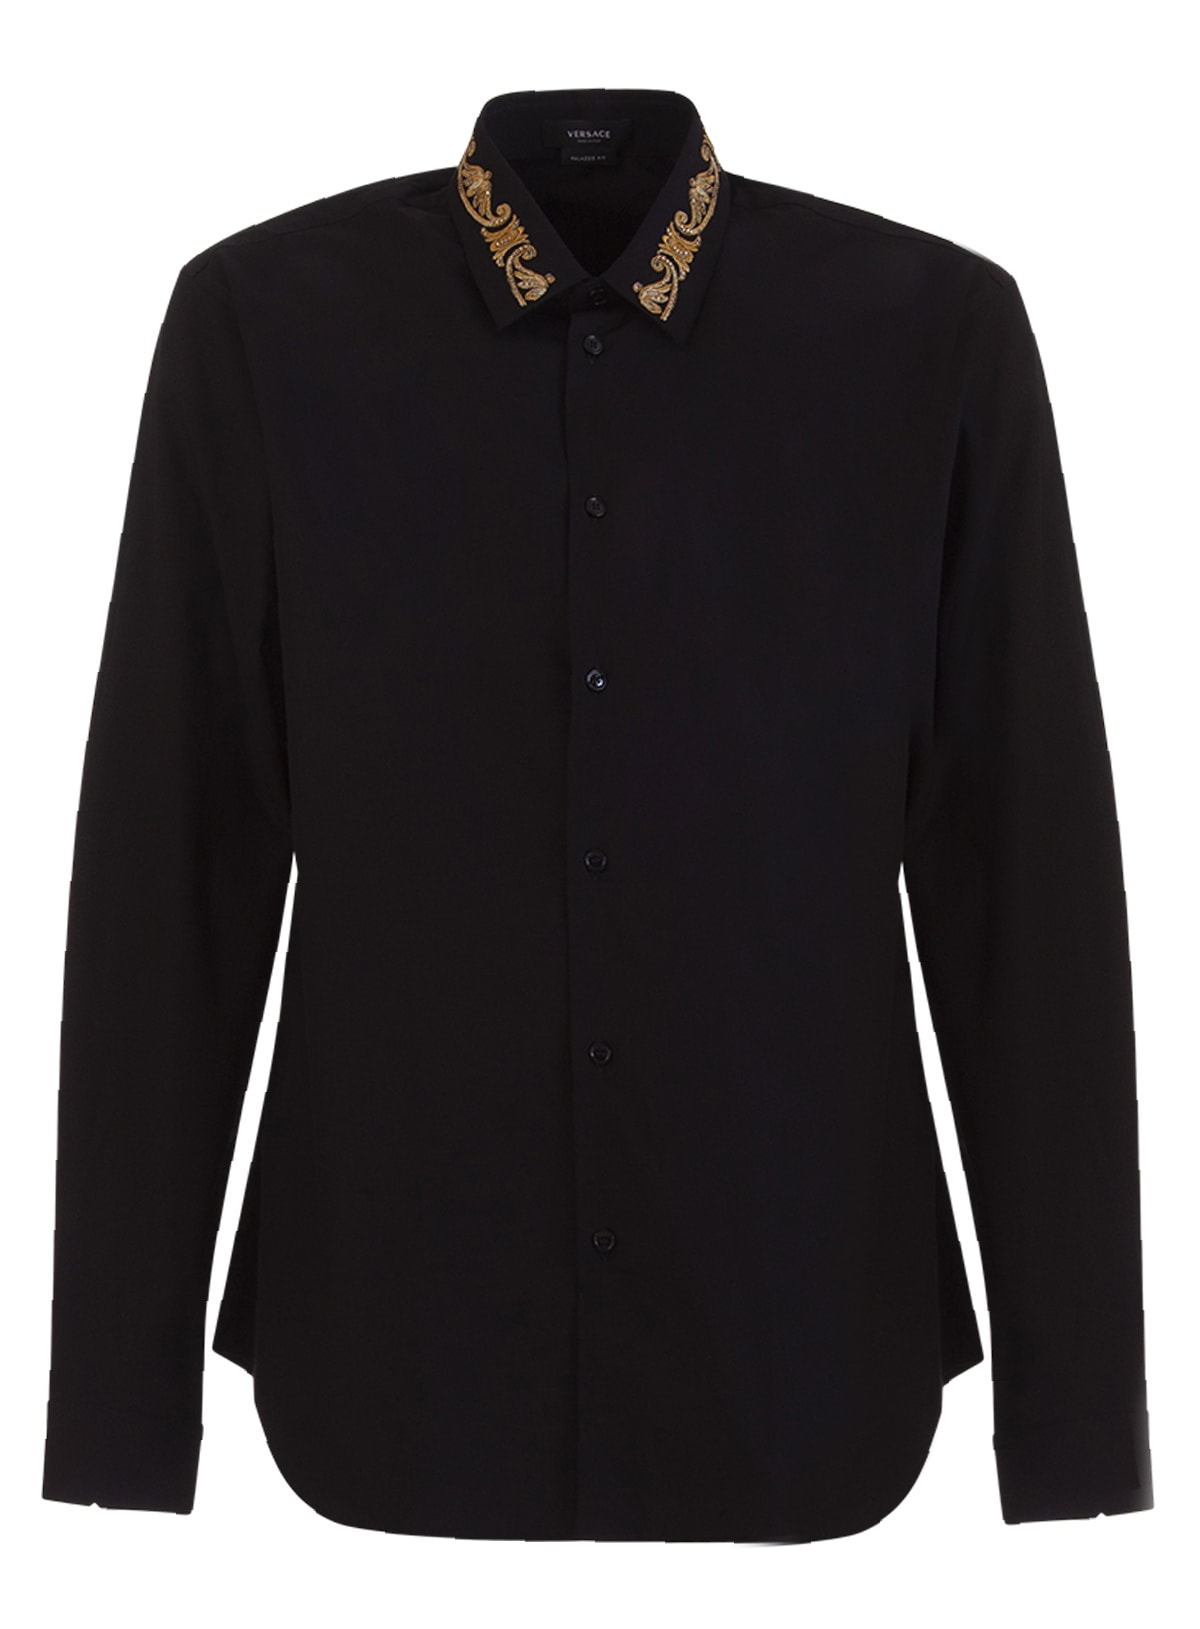 Versace BAROQUE EMBROIDERY SHIRT